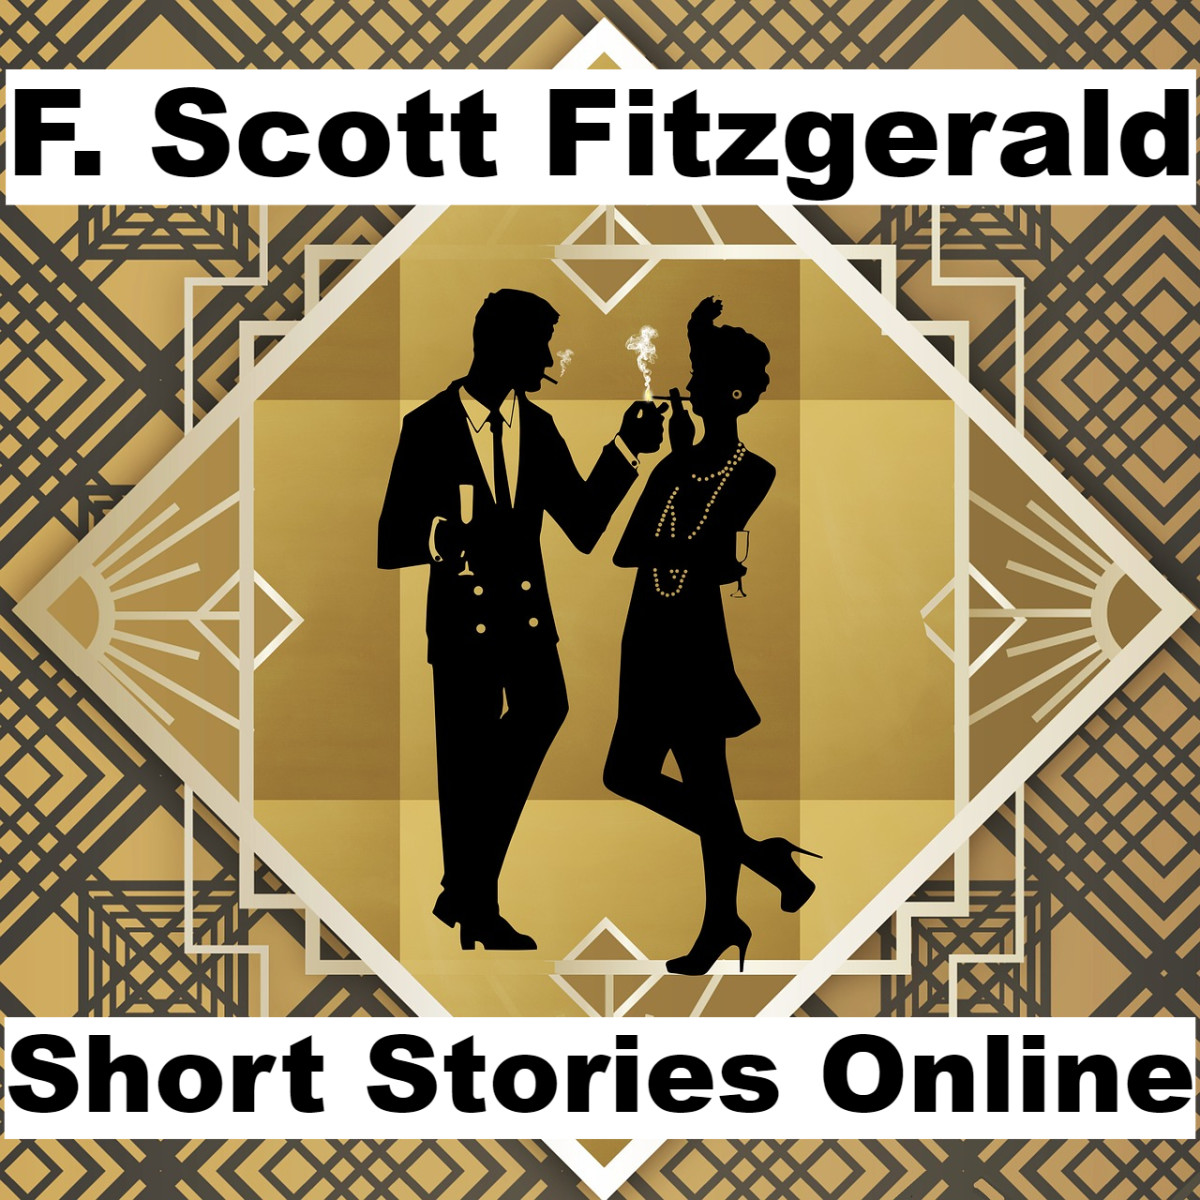 F. Scott Fitzgerald Short Stories Online